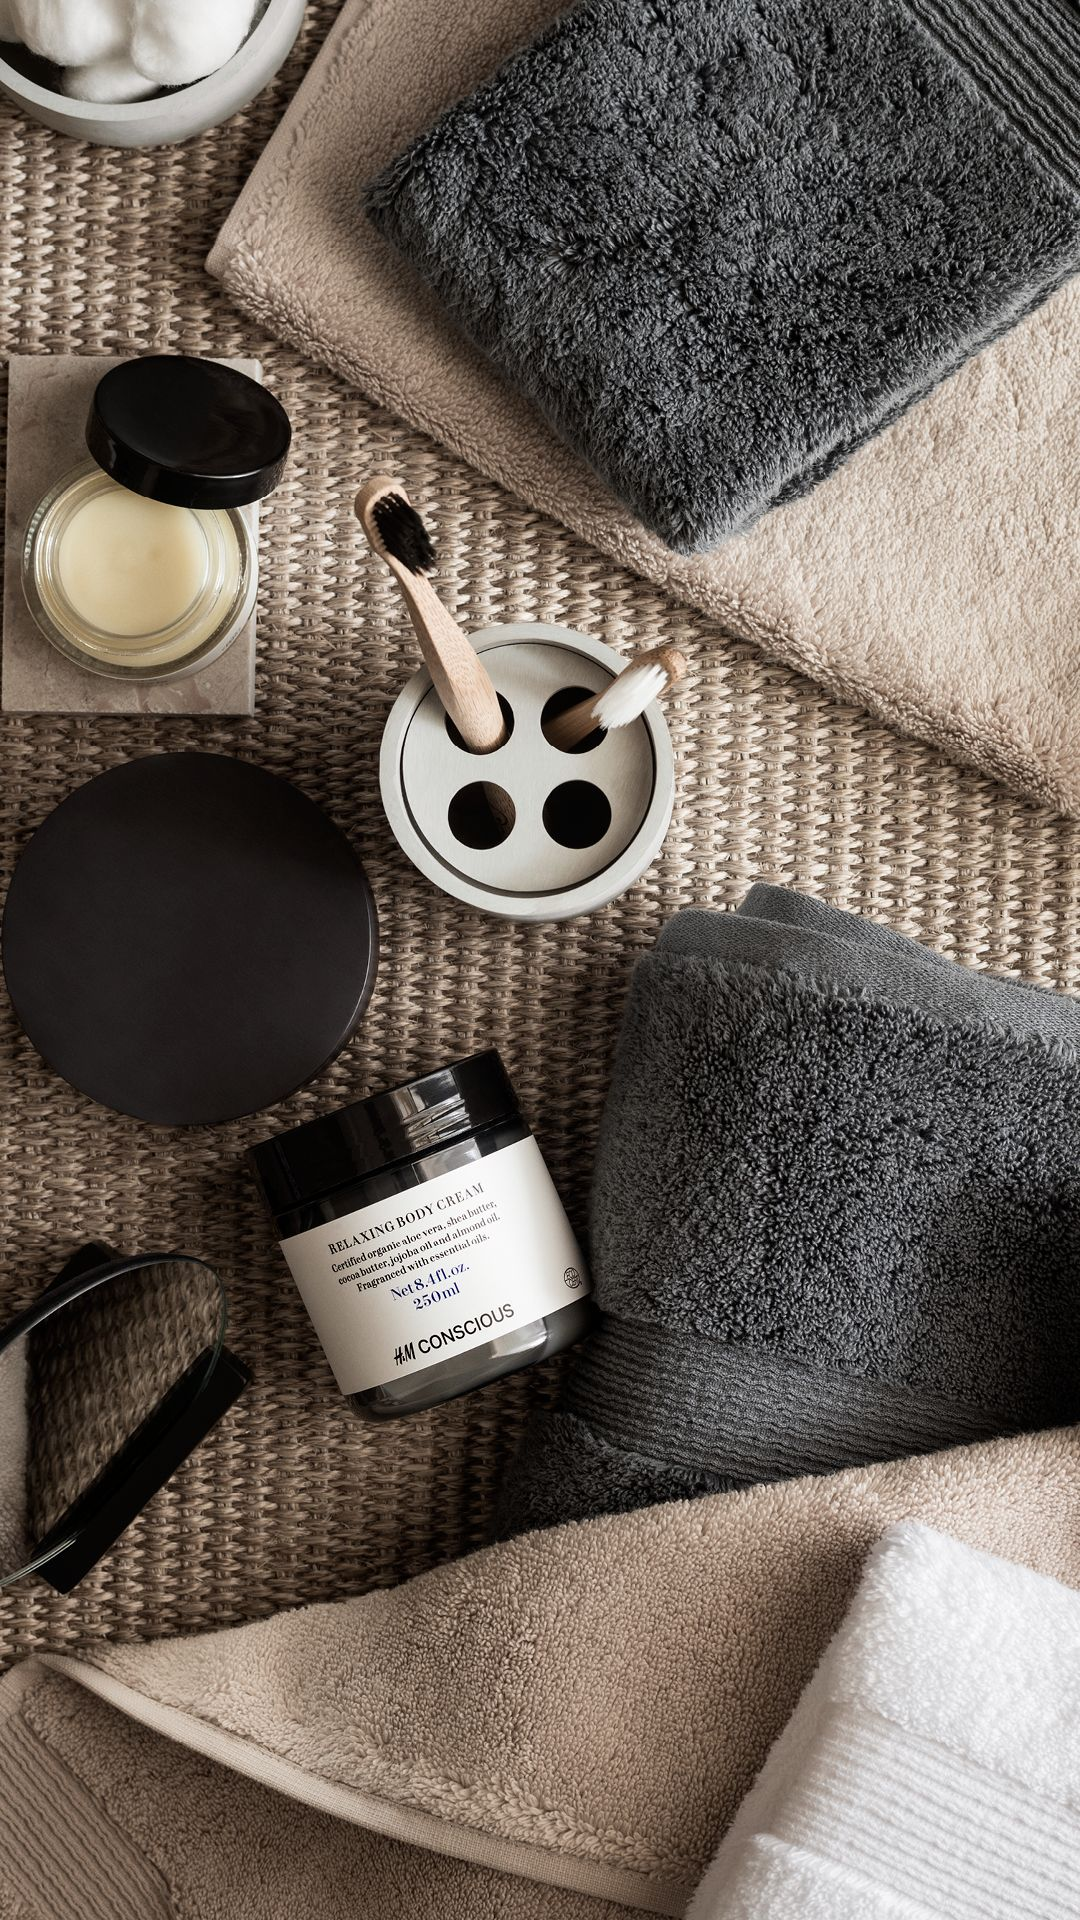 Badkamer Accessoires H&m Spruce Up Your Bathroom With Modern Accessories And Plush Towels